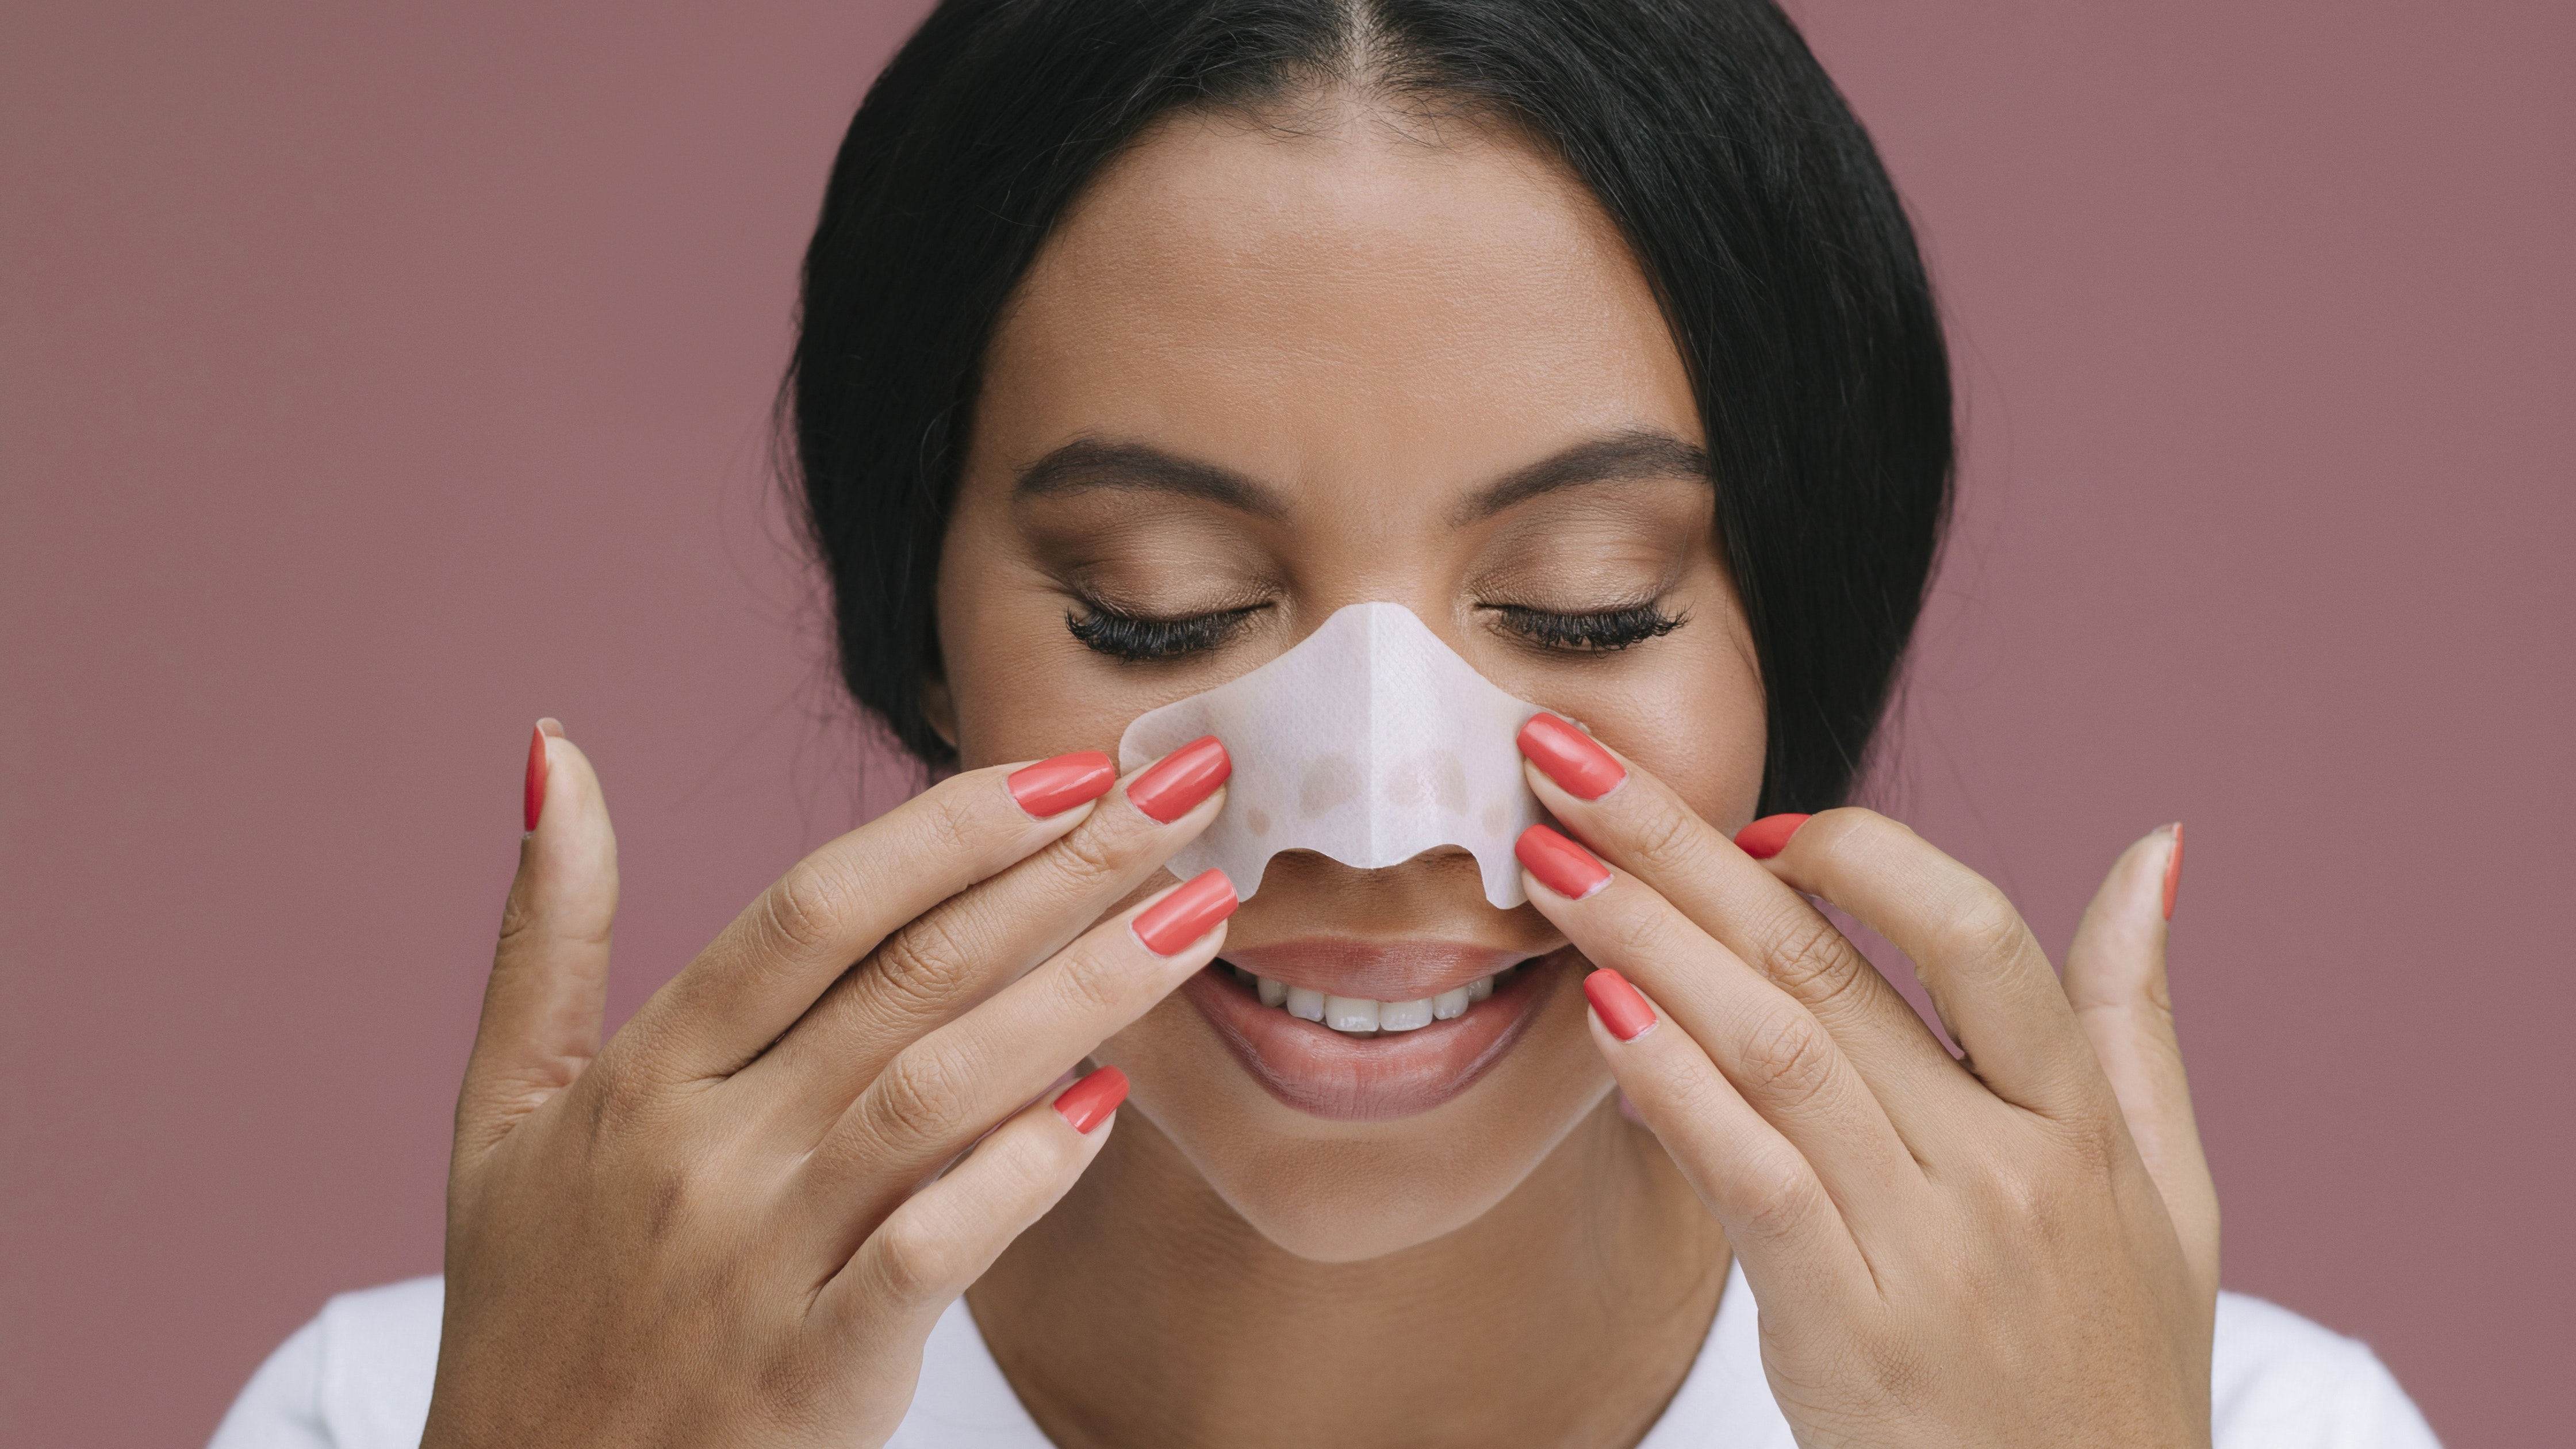 Derms Share Their Favorite Products for Tackling Blackheads